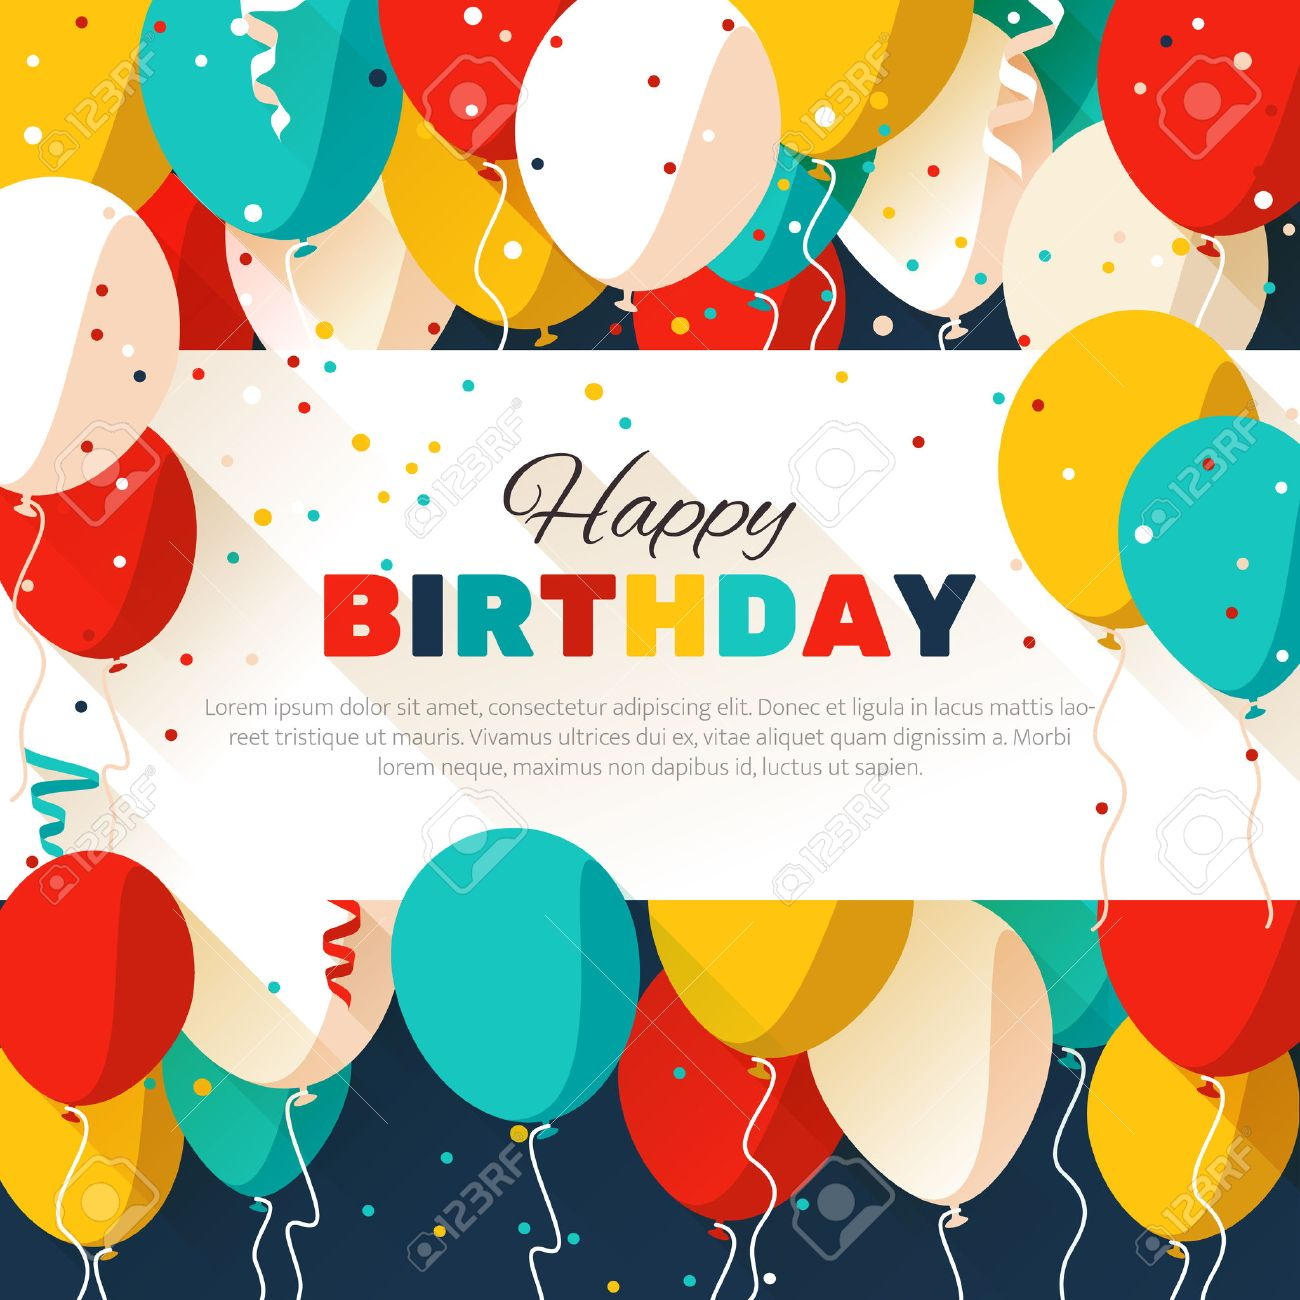 happy birthday greeting card in a flat style royalty free cliparts, Birthday card